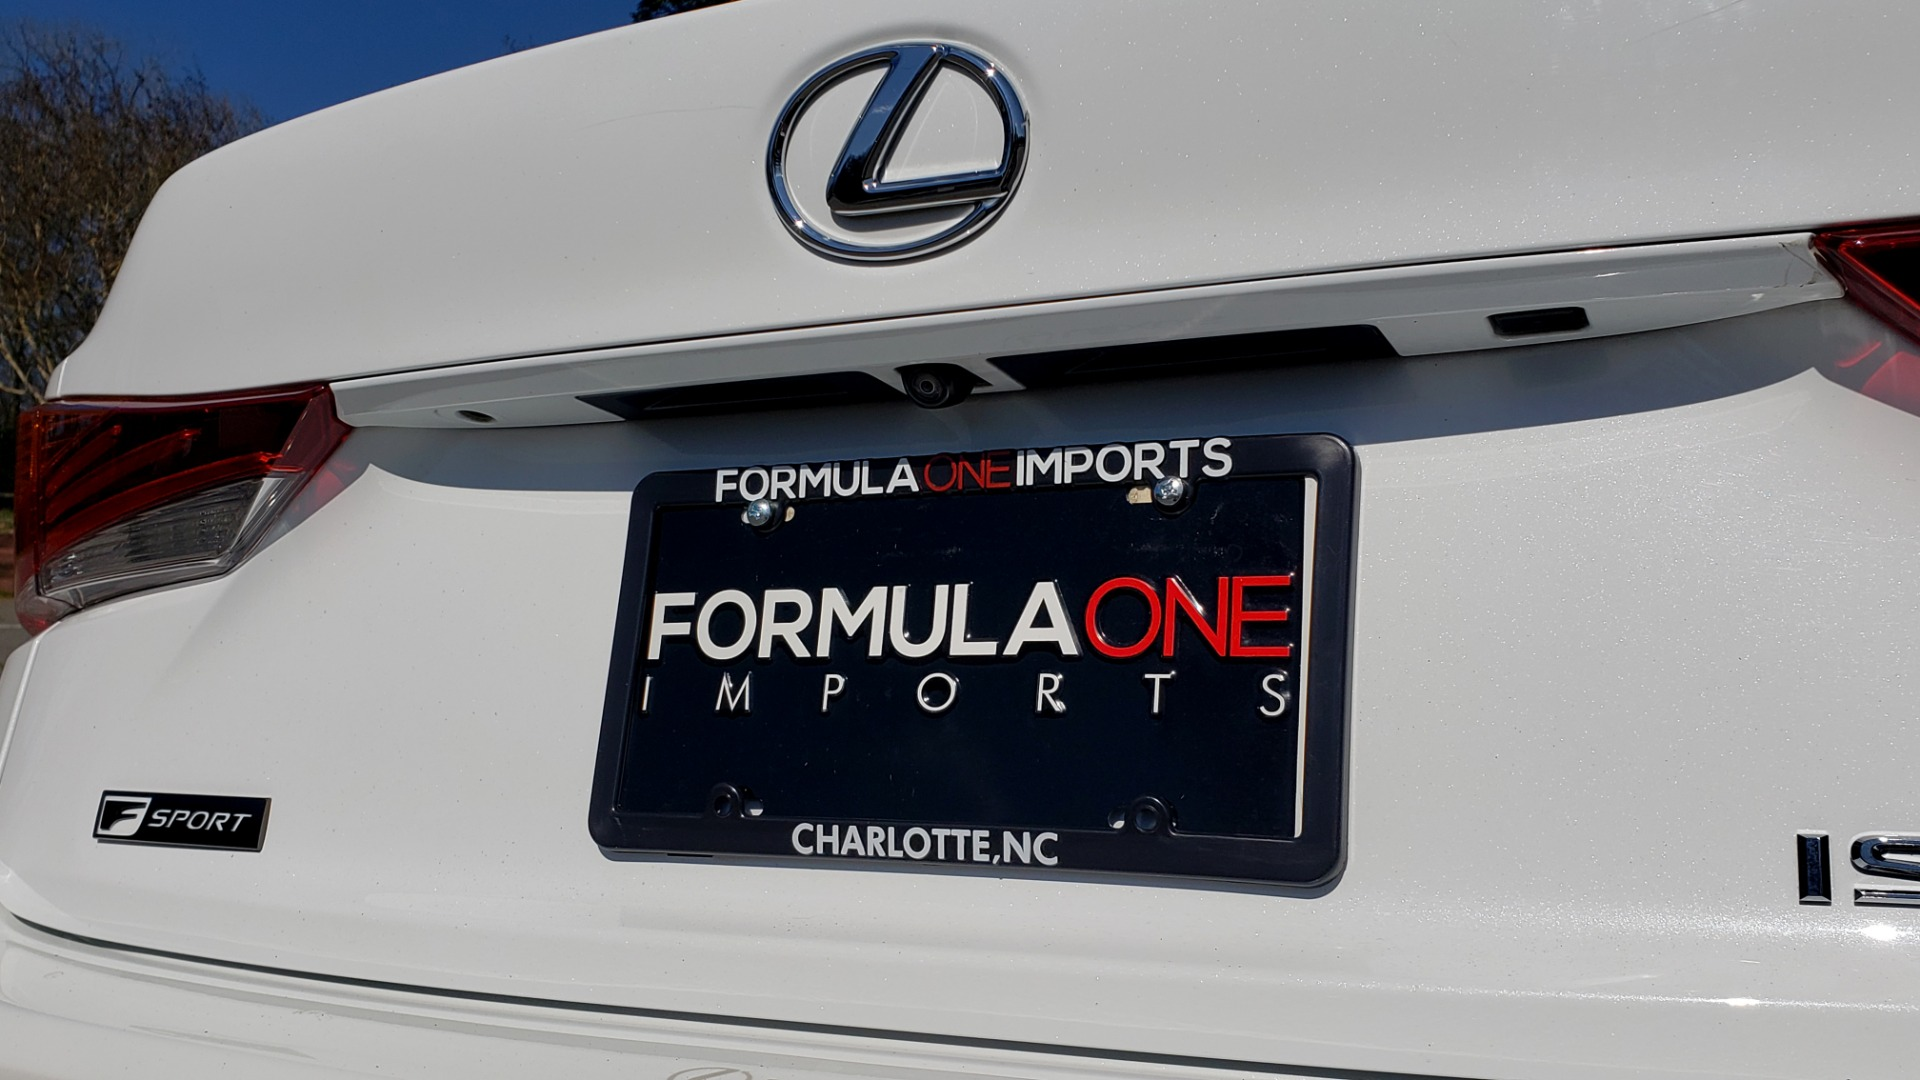 Used 2017 Lexus IS 200T F-SPORT / SUNROOF / REARVIEW / VENT SEATS for sale Sold at Formula Imports in Charlotte NC 28227 26